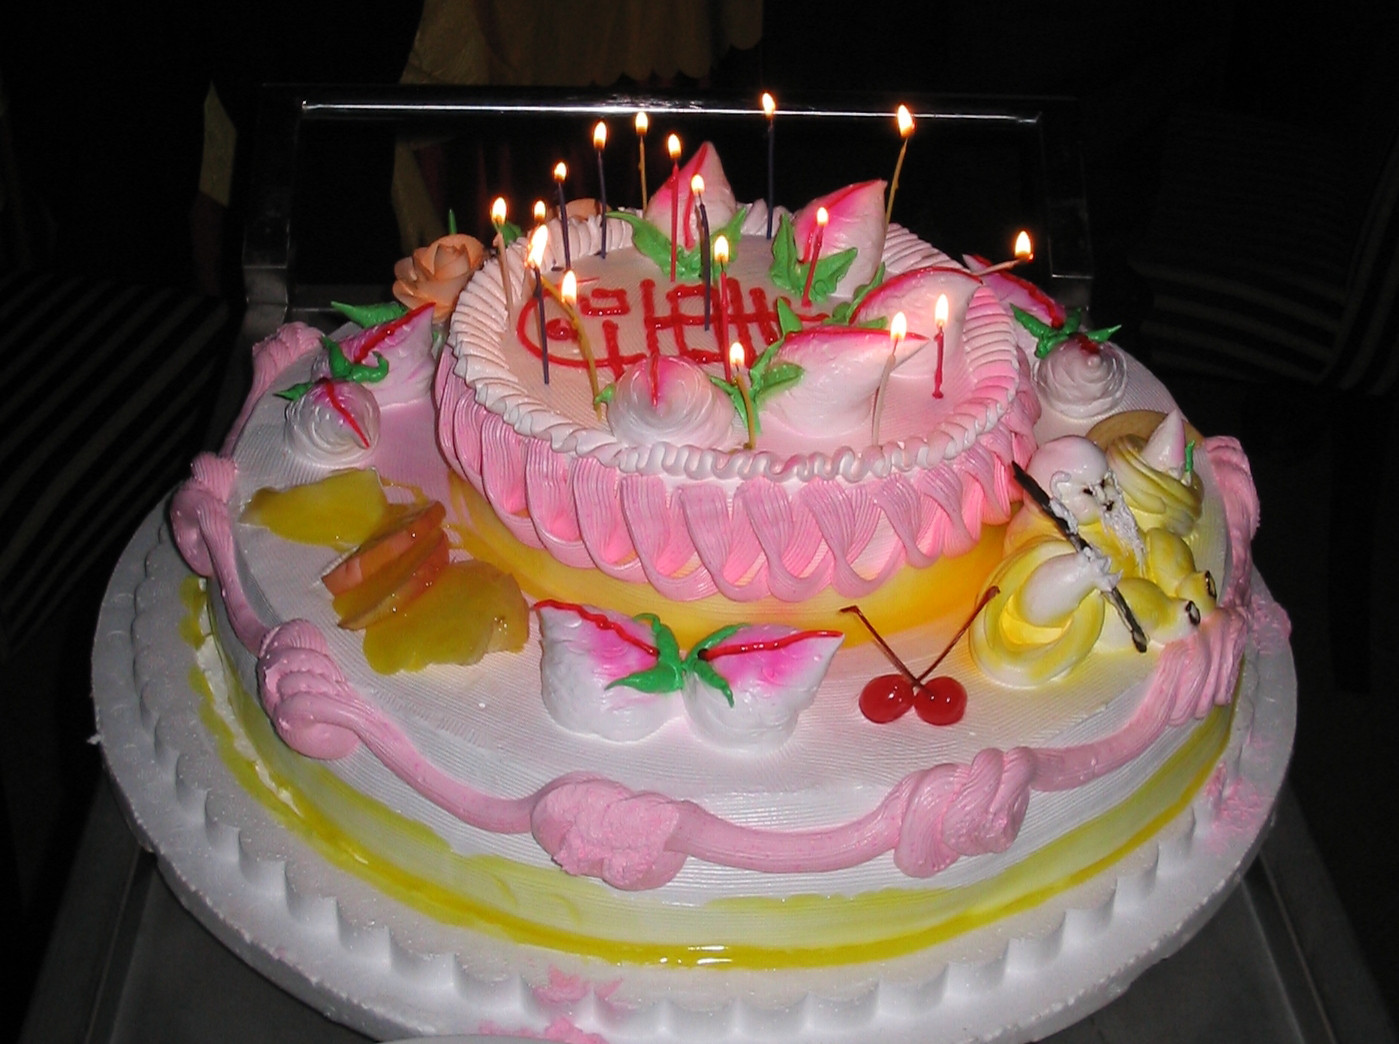 Best ideas about Birthday Cake Pics . Save or Pin chinese birthday cake Now.